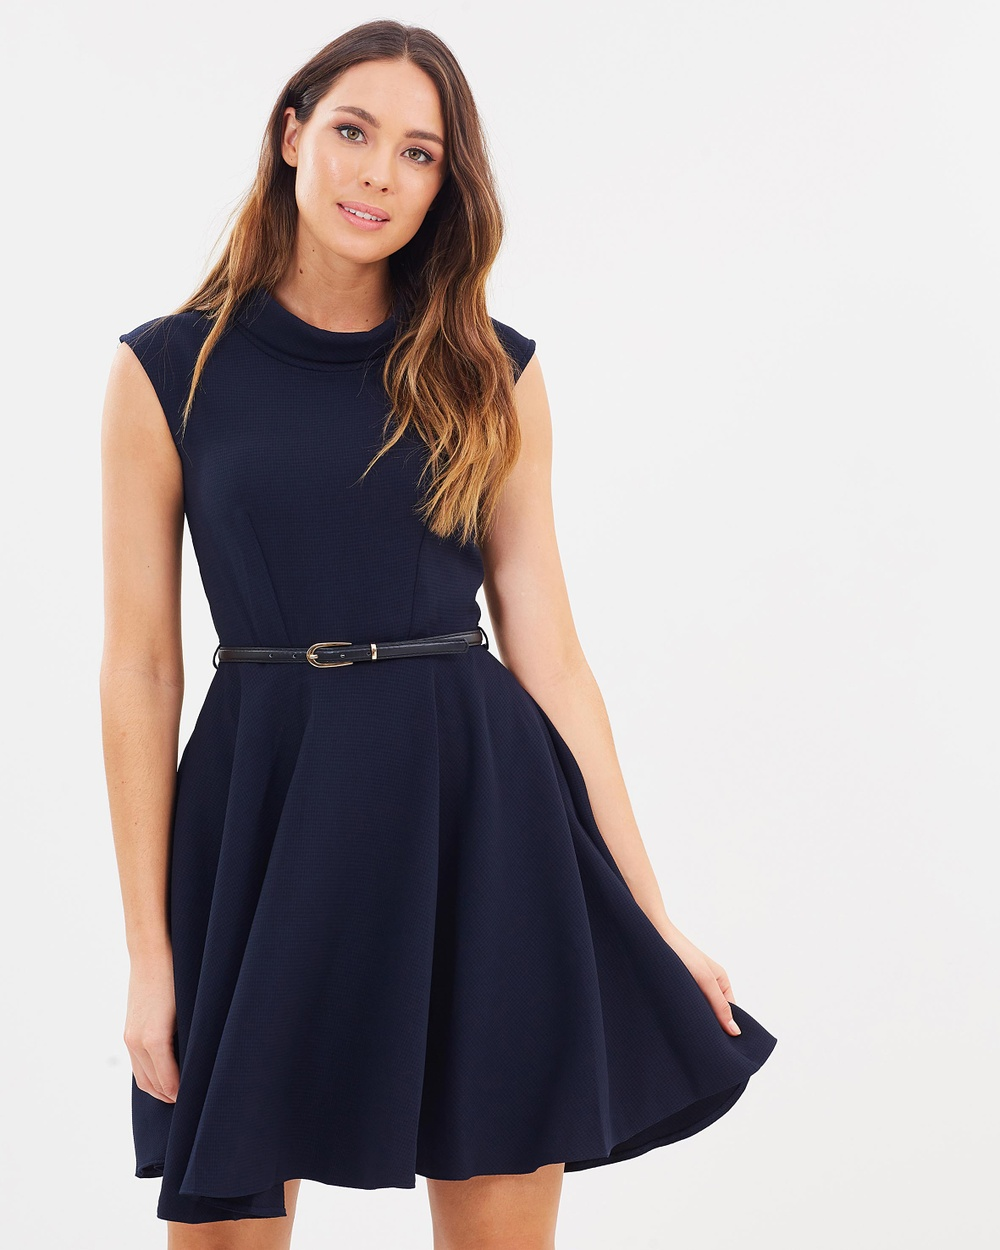 Closet London Stand Collar Skater Dress Dresses Navy Stand Collar Skater Dress